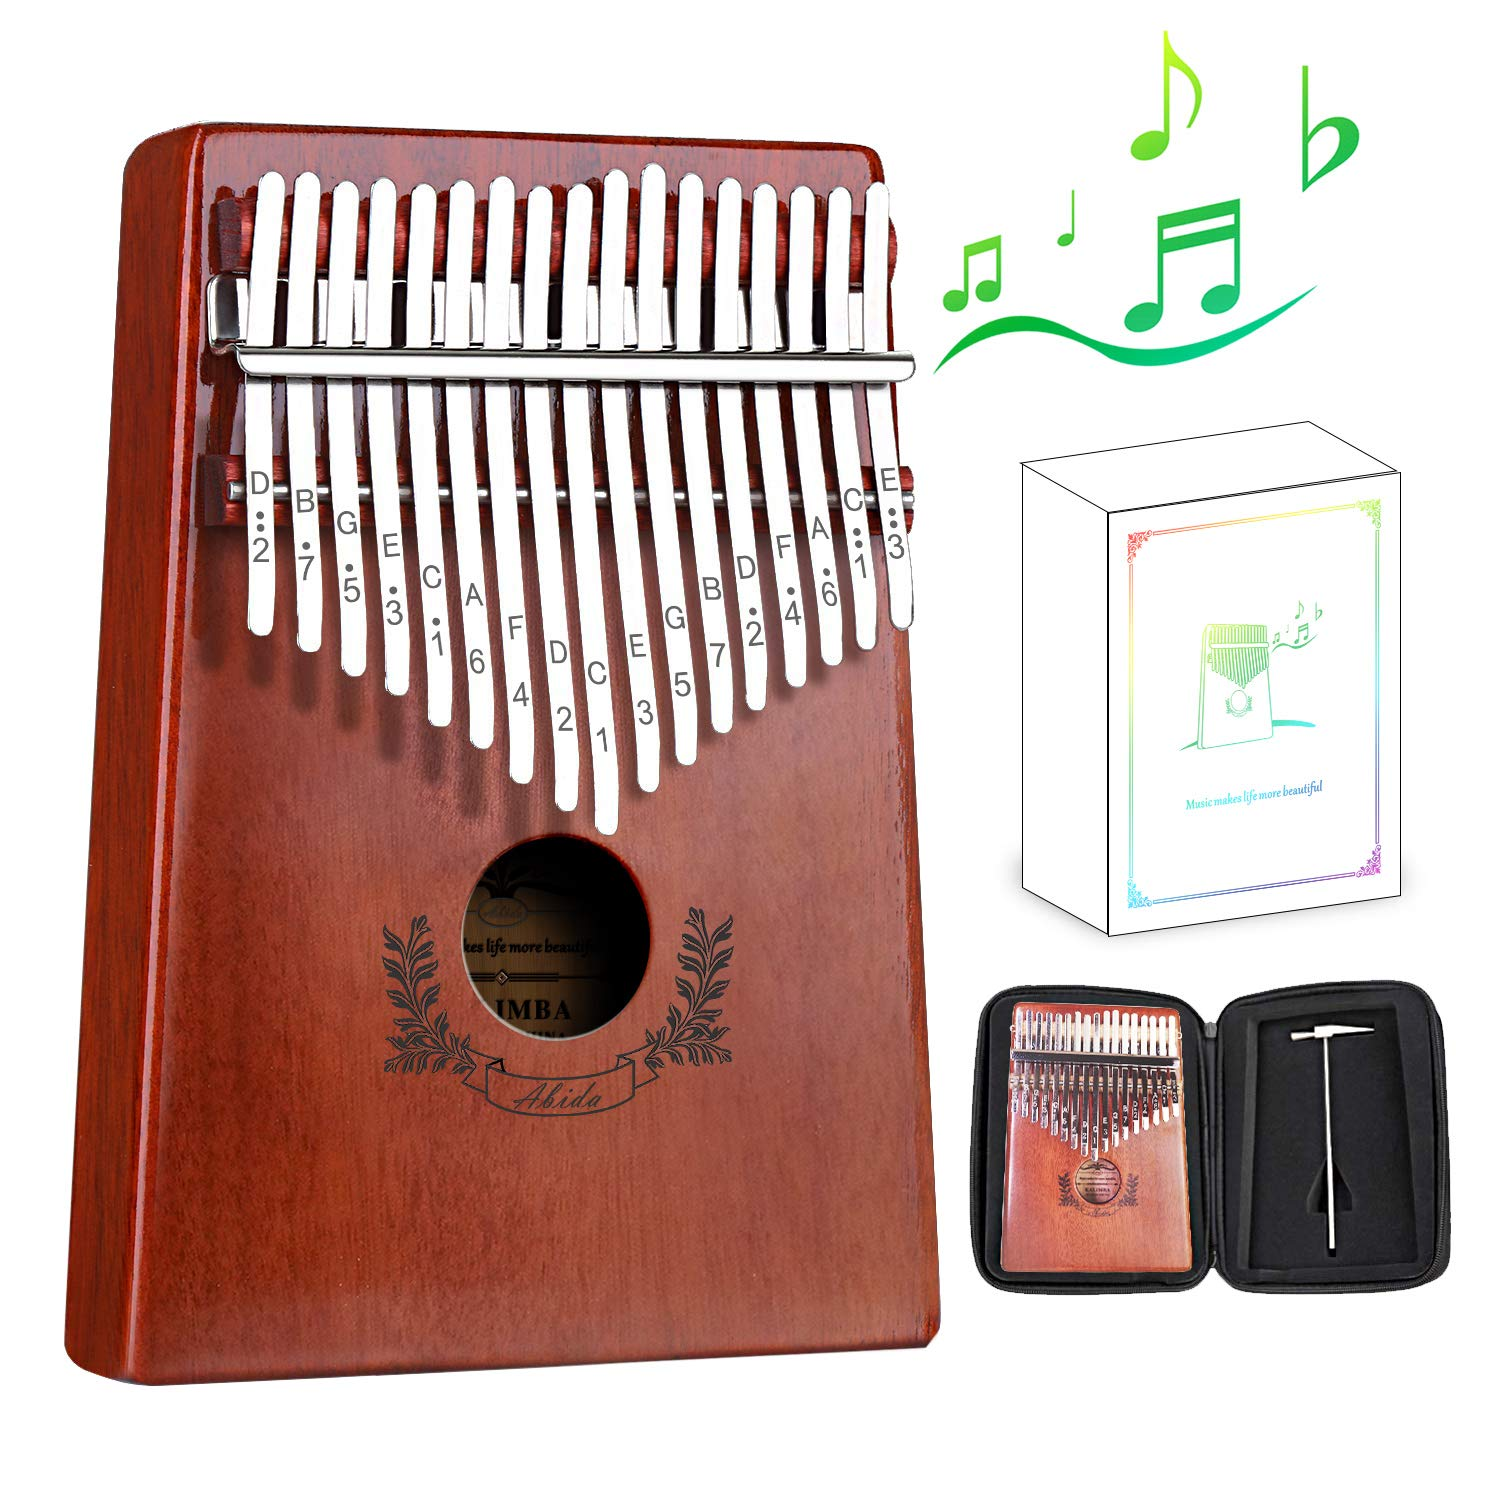 Kalimba, Abida Exquisite 17 Keys Thumb Piano with EVA Waterproof Case Study Instruction Tuning Hammer, Solid Finger Piano Mahogany Body Portable Musical Instrument Gifts for Kids and Adult Beginners